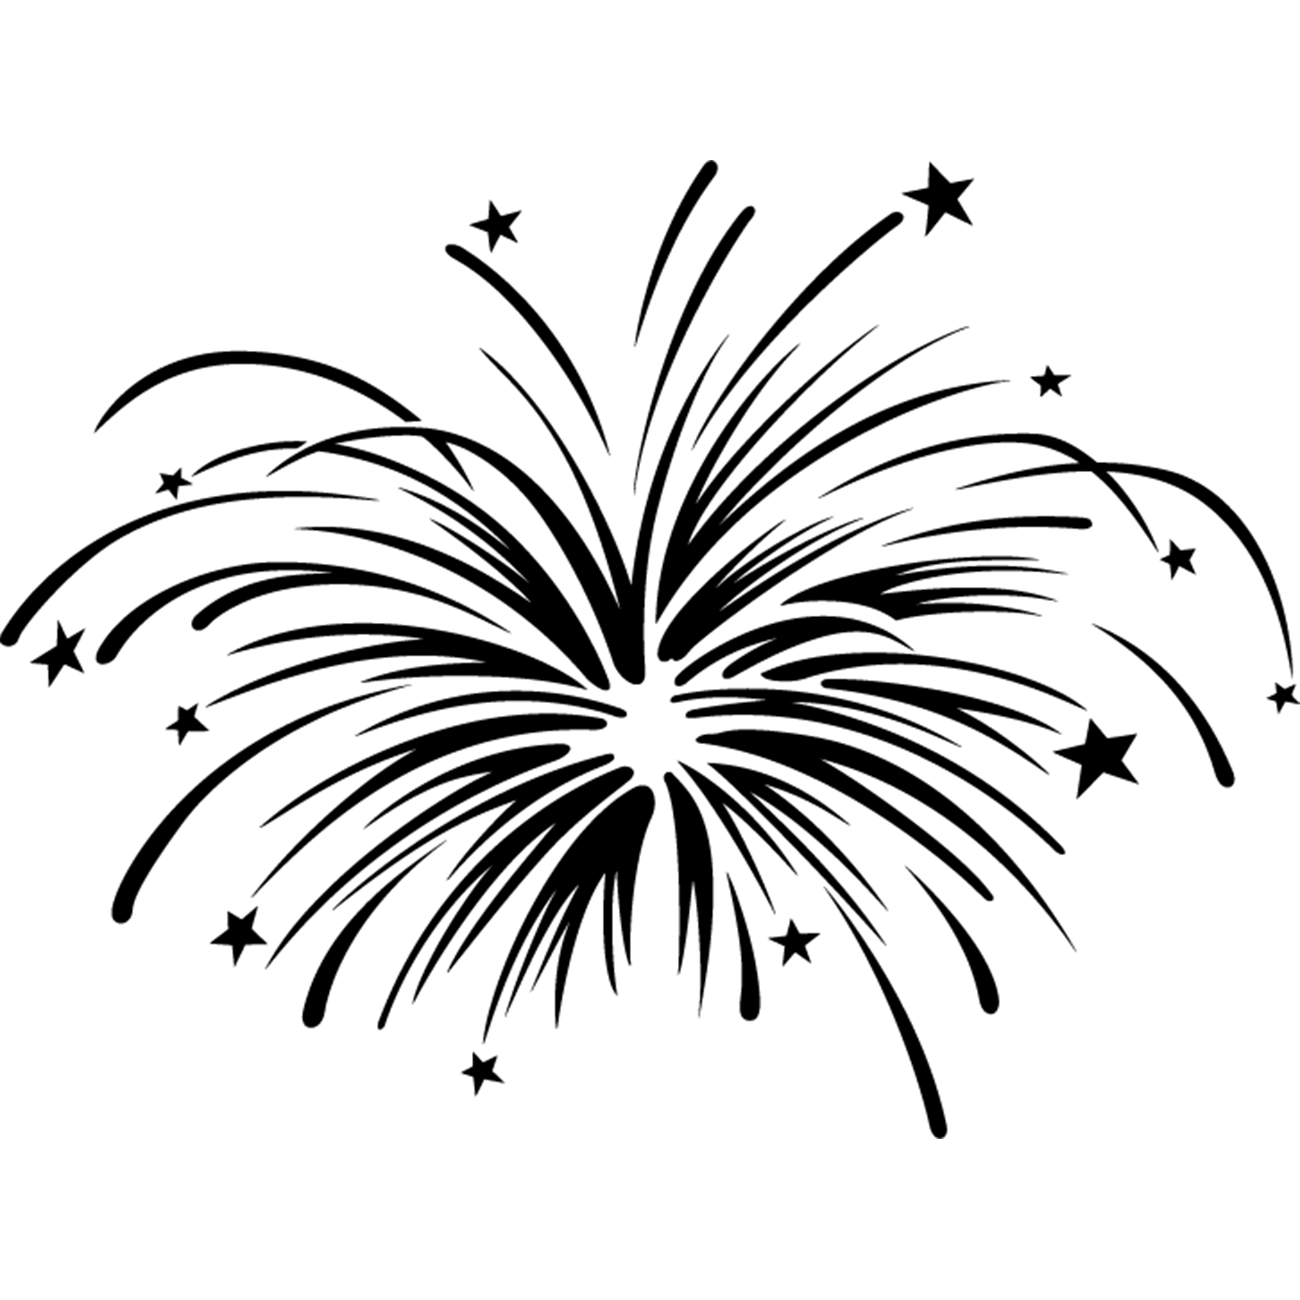 Fireworks Black And White Clip Art